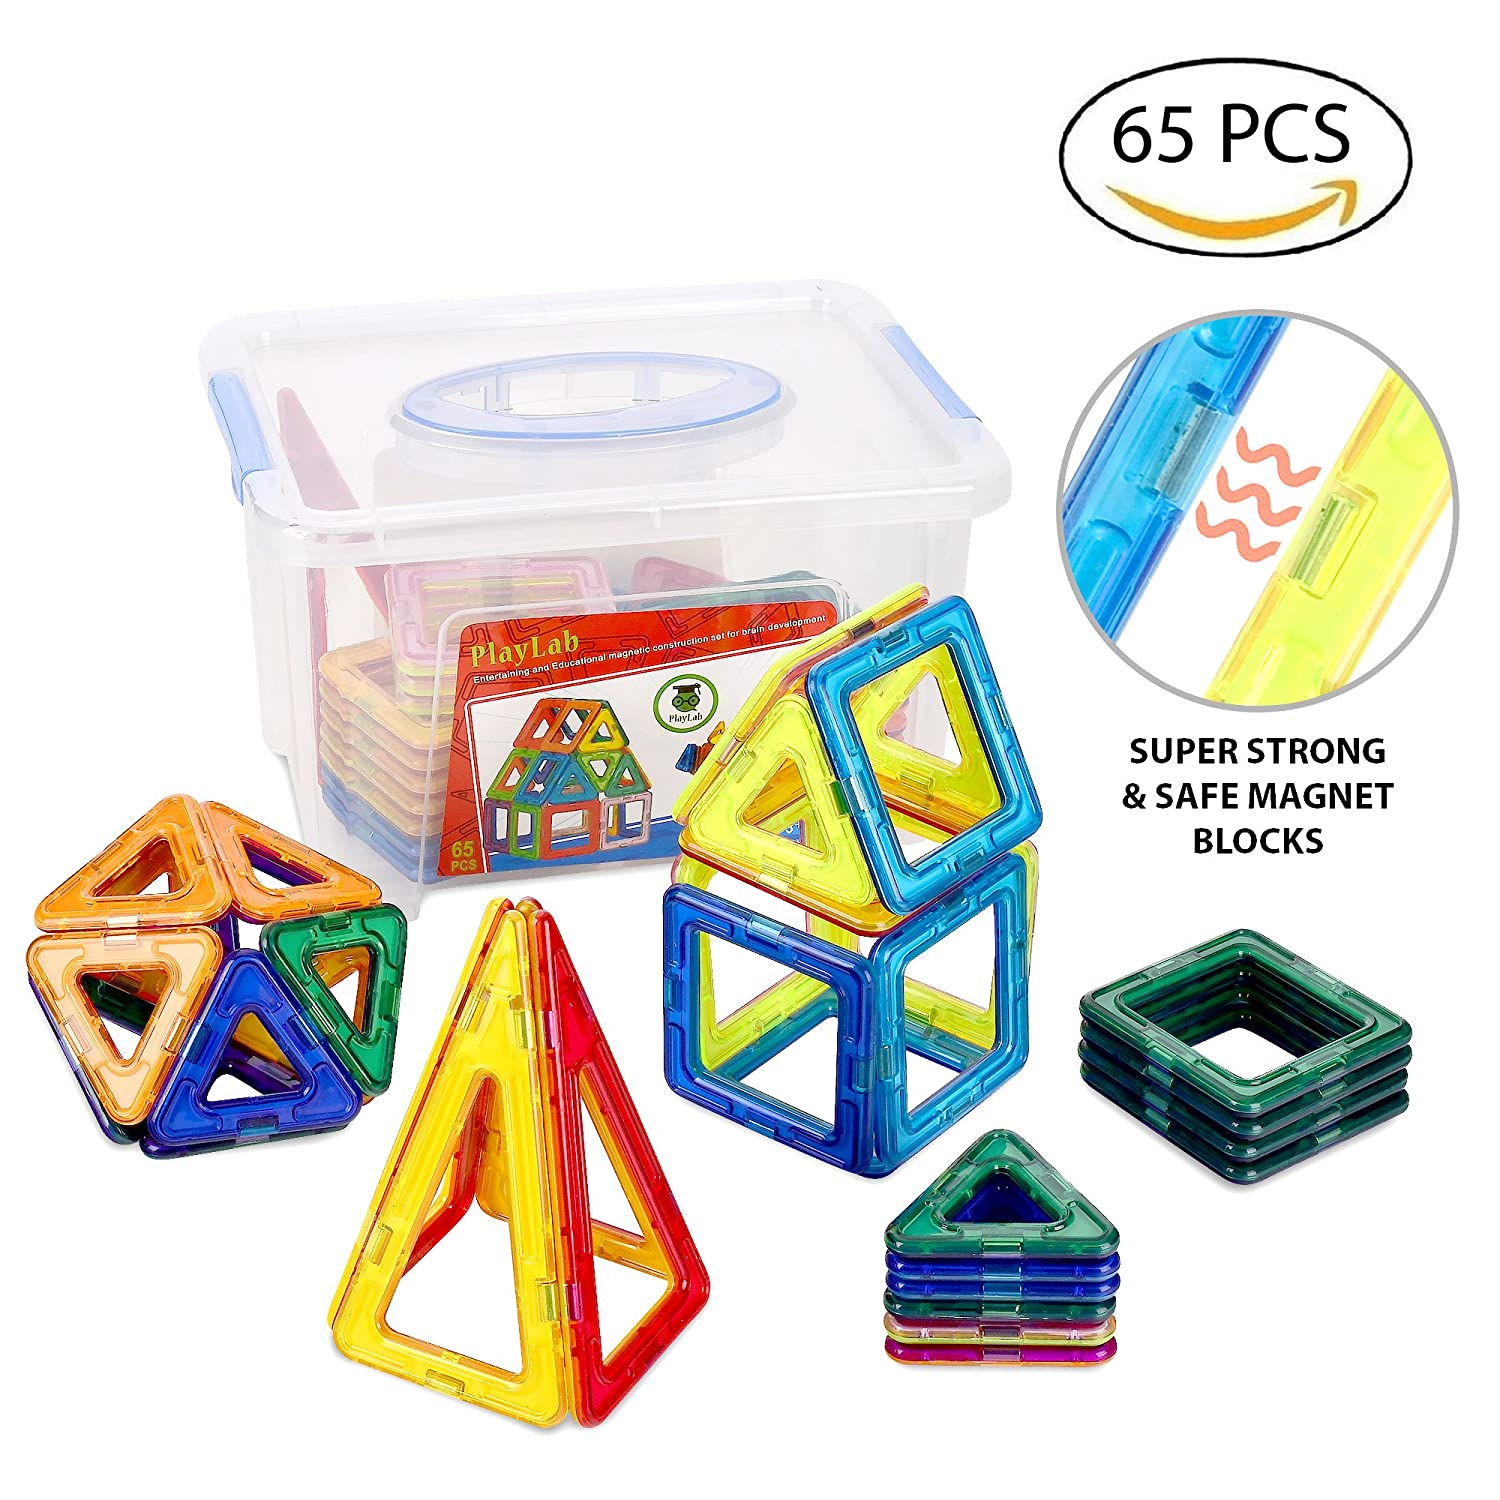 Magnetic Building Tiles for Kids | Stackable Magnetic Construction Building Blocks | Set of 65 Colorful Pieces with Storage Box Review